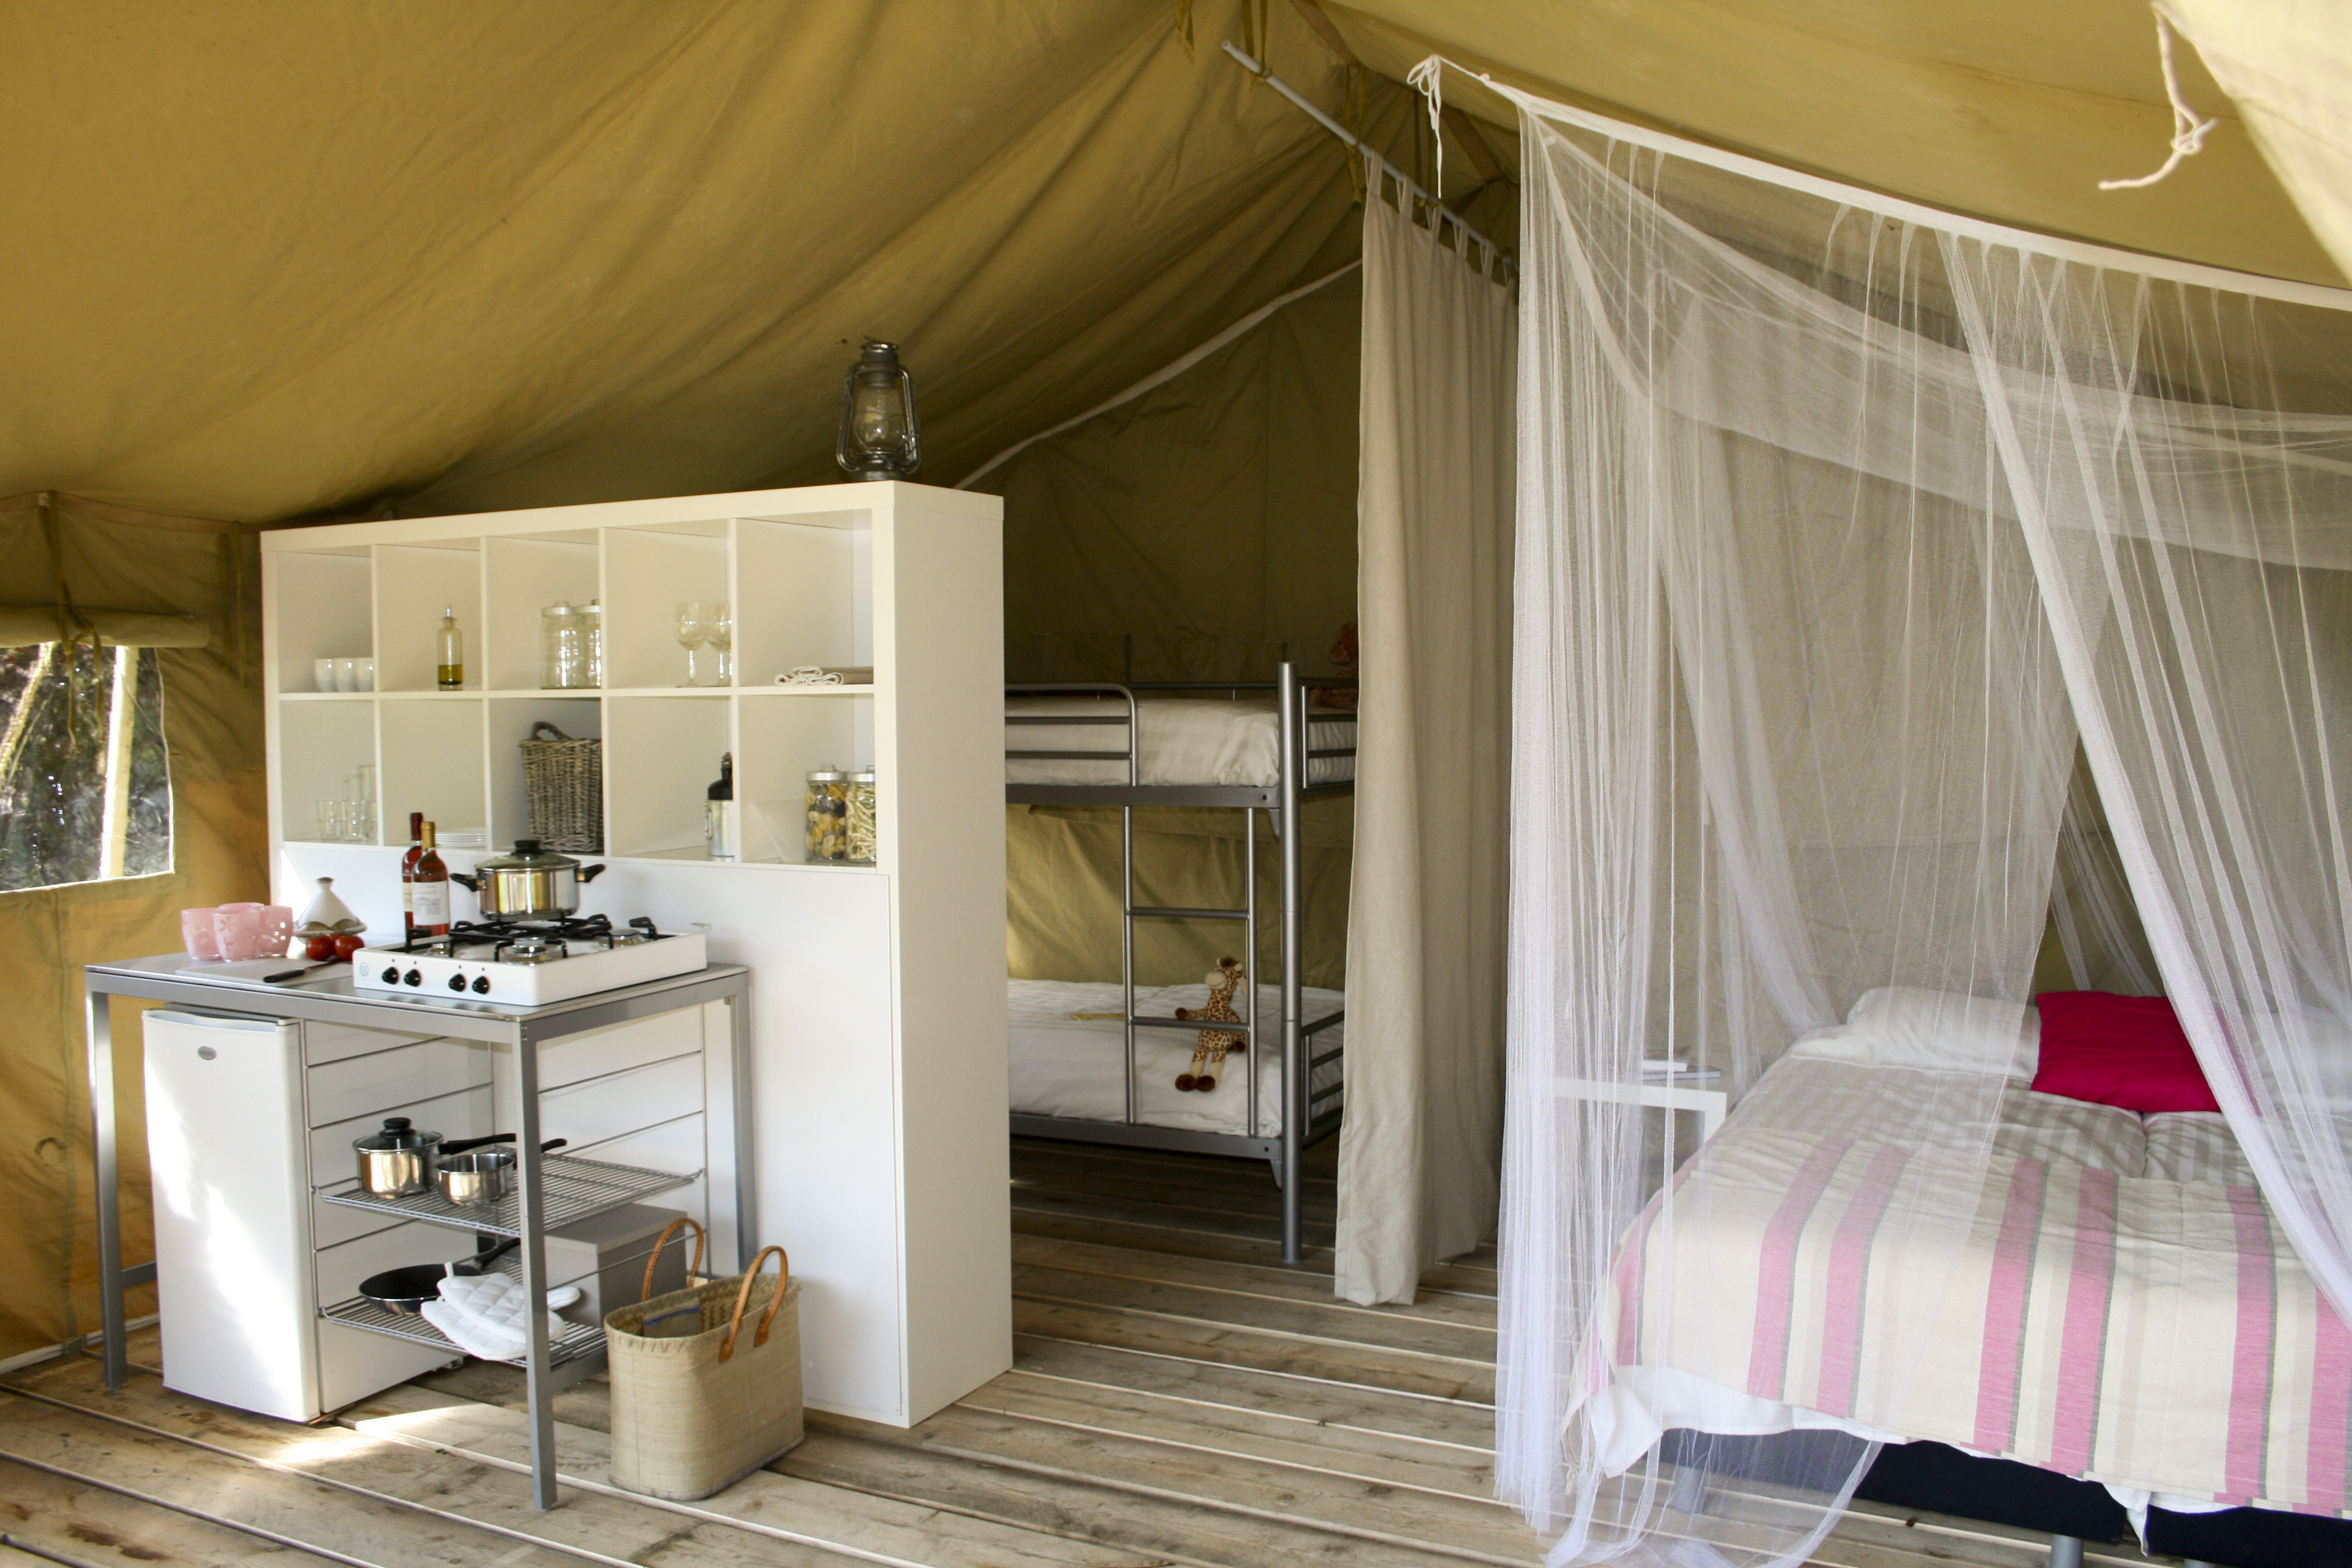 natur pur glamping am blanksee glampinginfo. Black Bedroom Furniture Sets. Home Design Ideas